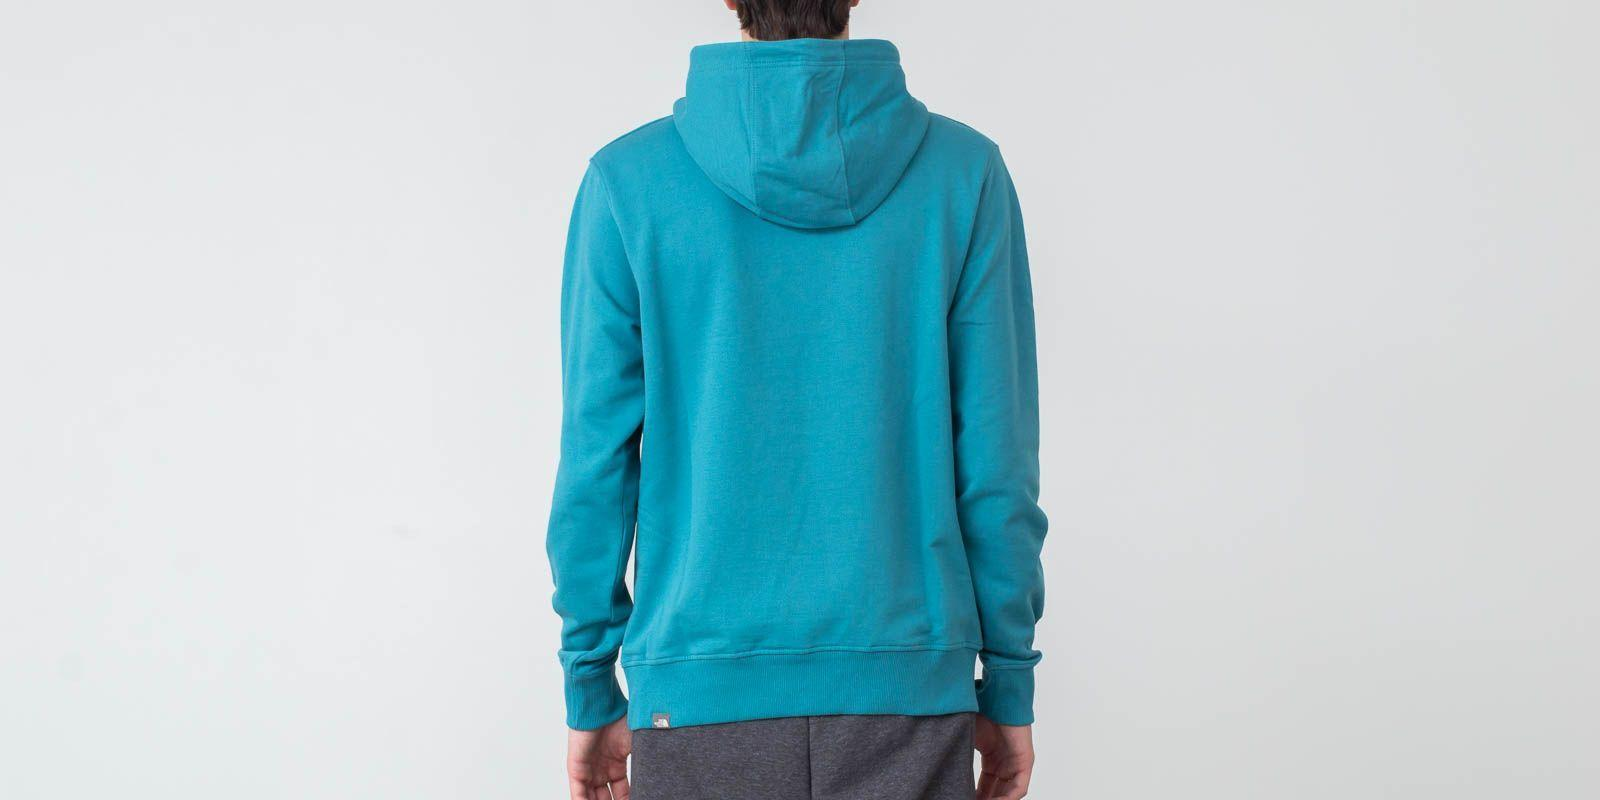 e7b60568e The North Face Drew Peak Hoodie Storm Blue in Blue for Men - Lyst